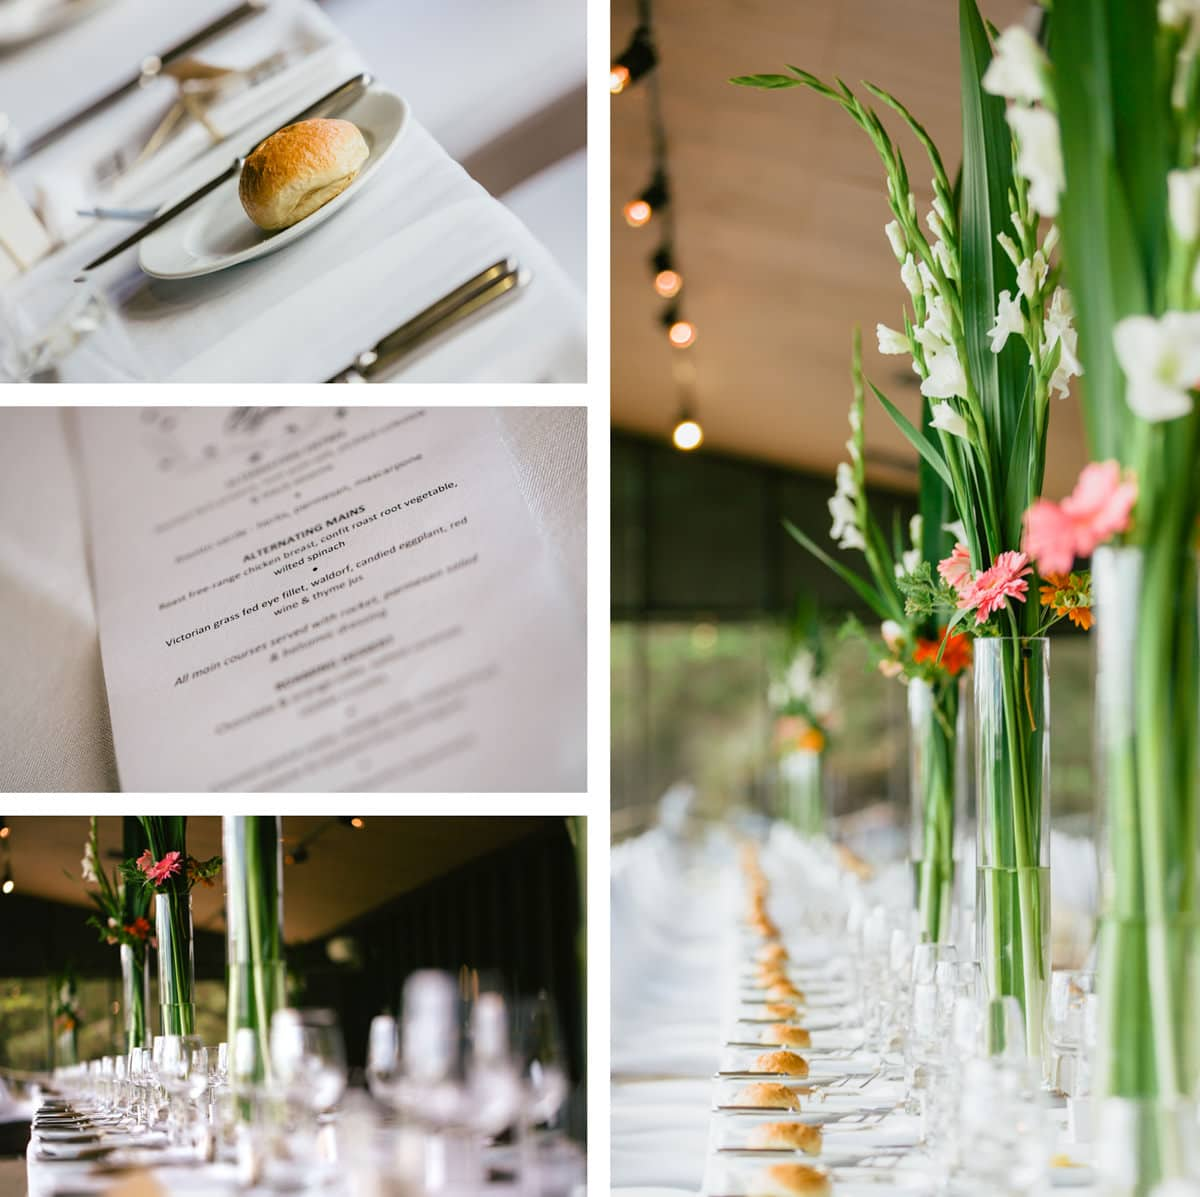 dinner decoration at werribee mansion function at werribee park - photographed by fresh photography Melbourne